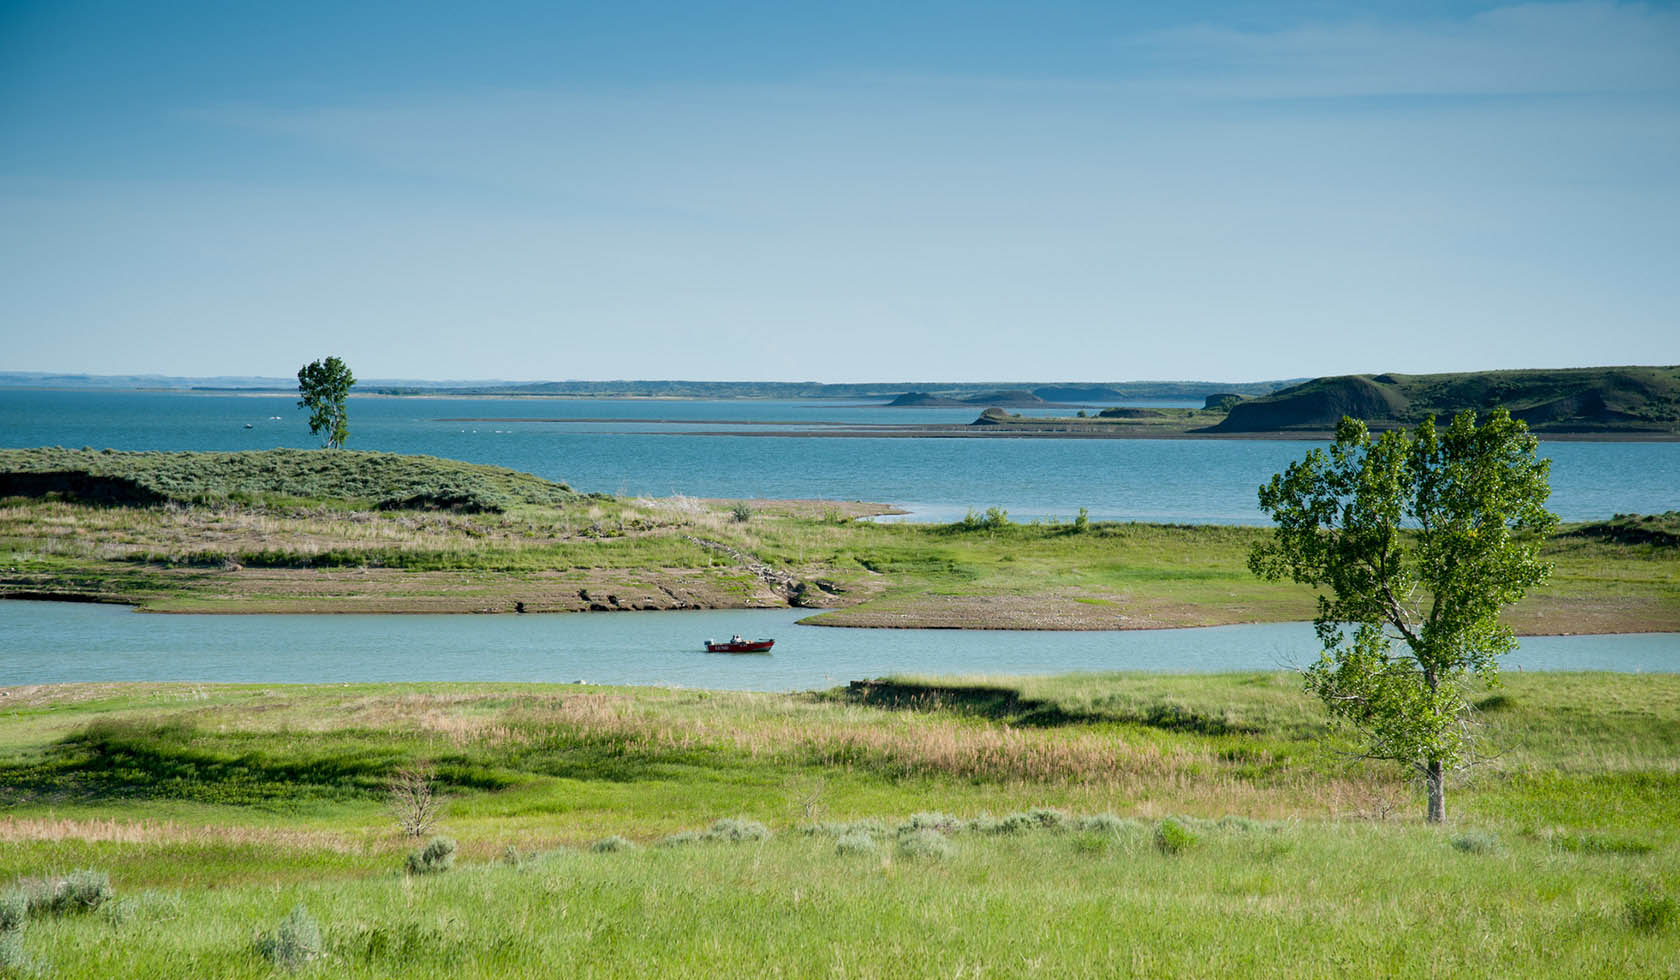 Fort Peck Lake Reservoir and Recreation Area